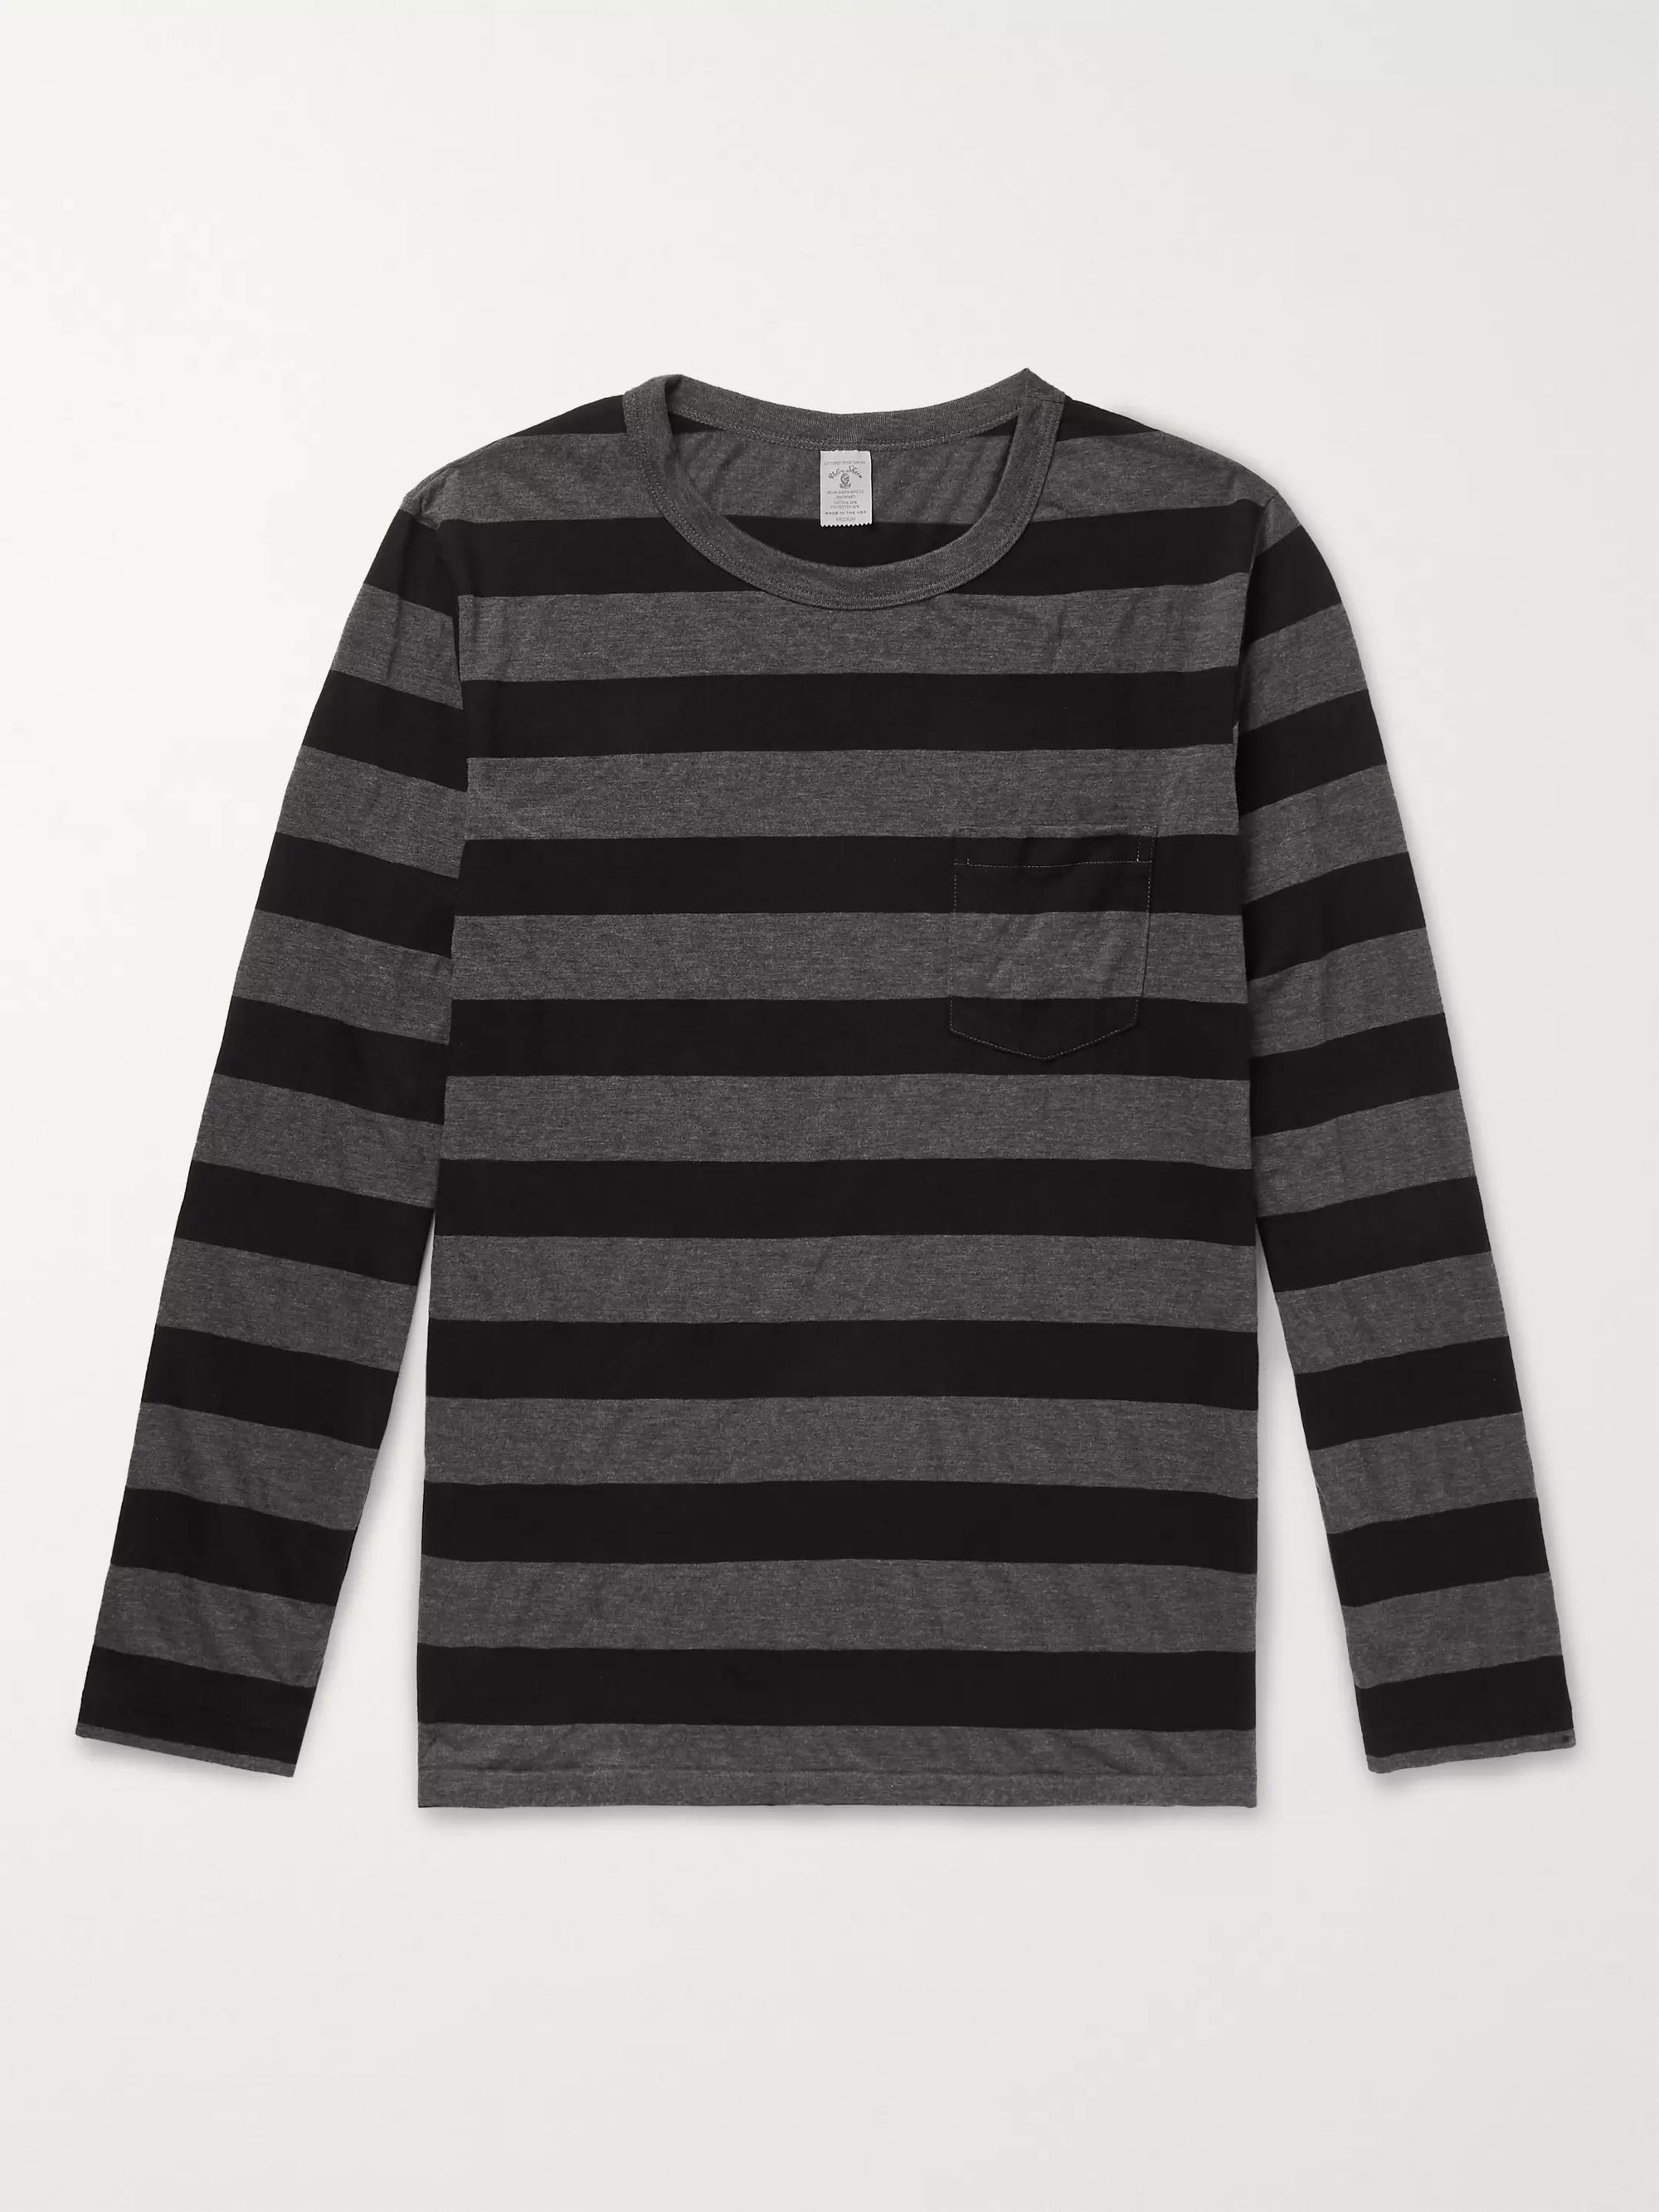 Velva Sheen Striped Cotton-Blend Jersey T-Shirt